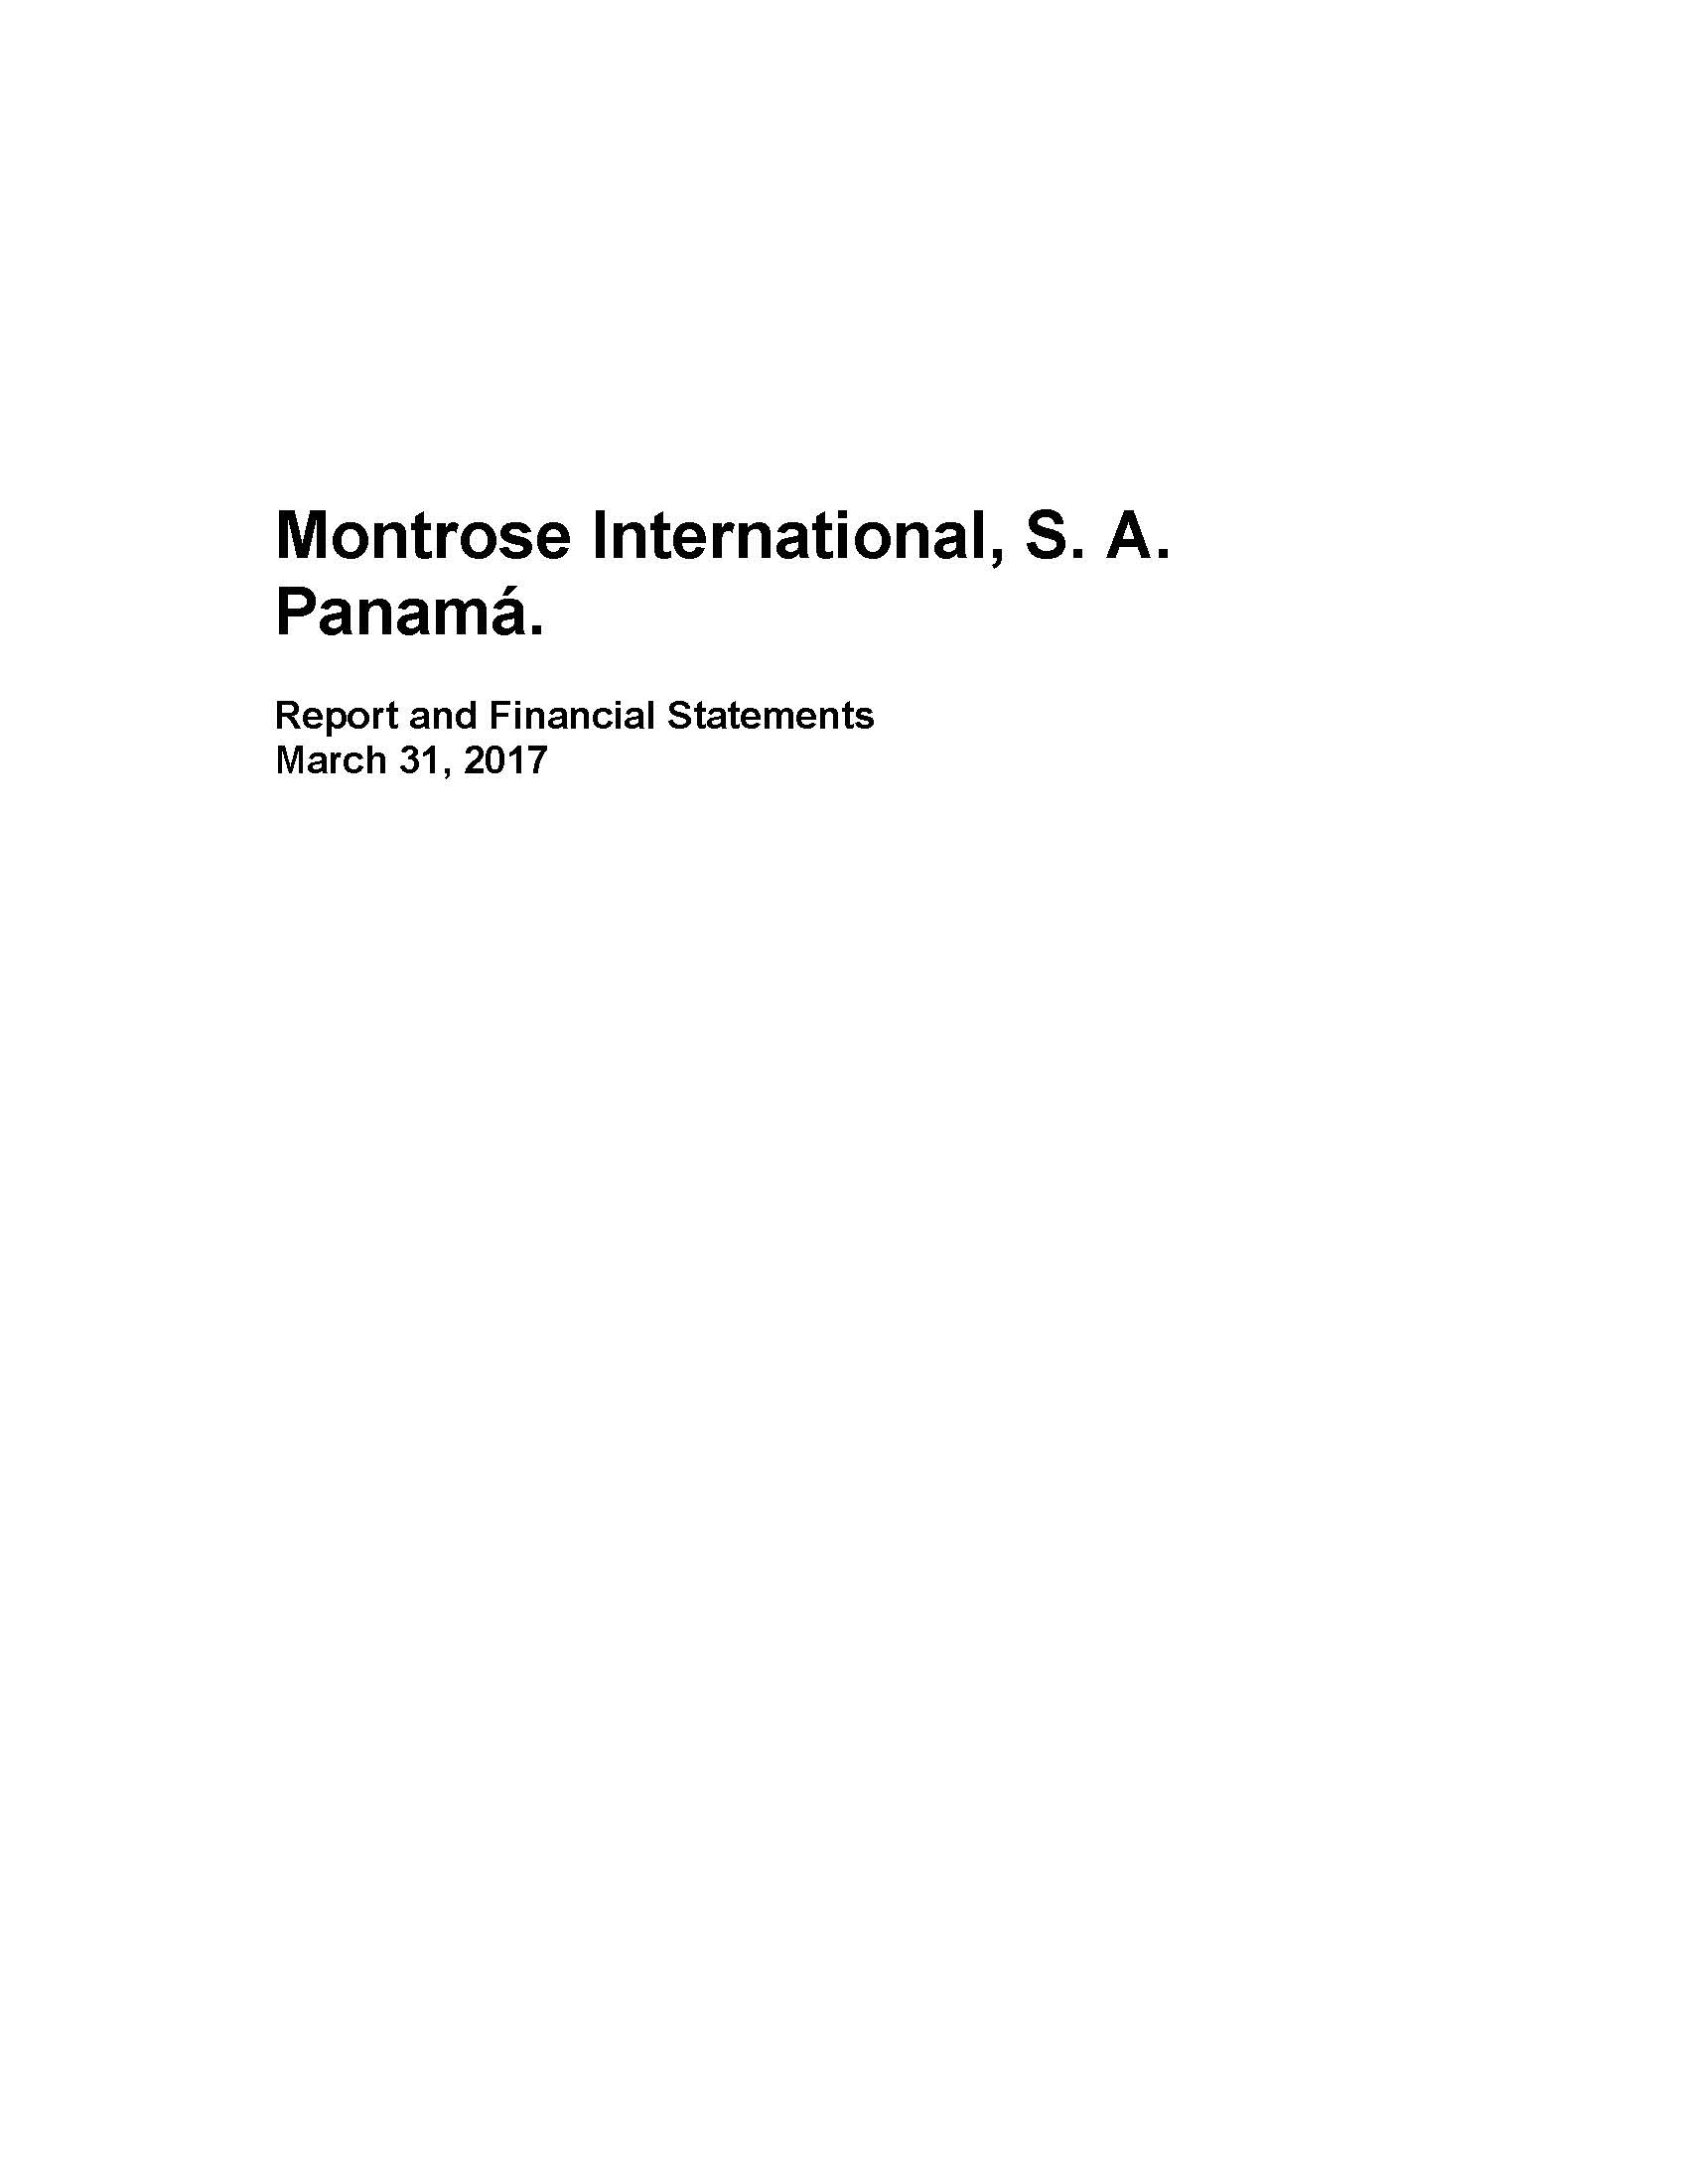 Montrose International S. A Panama 2016-2017